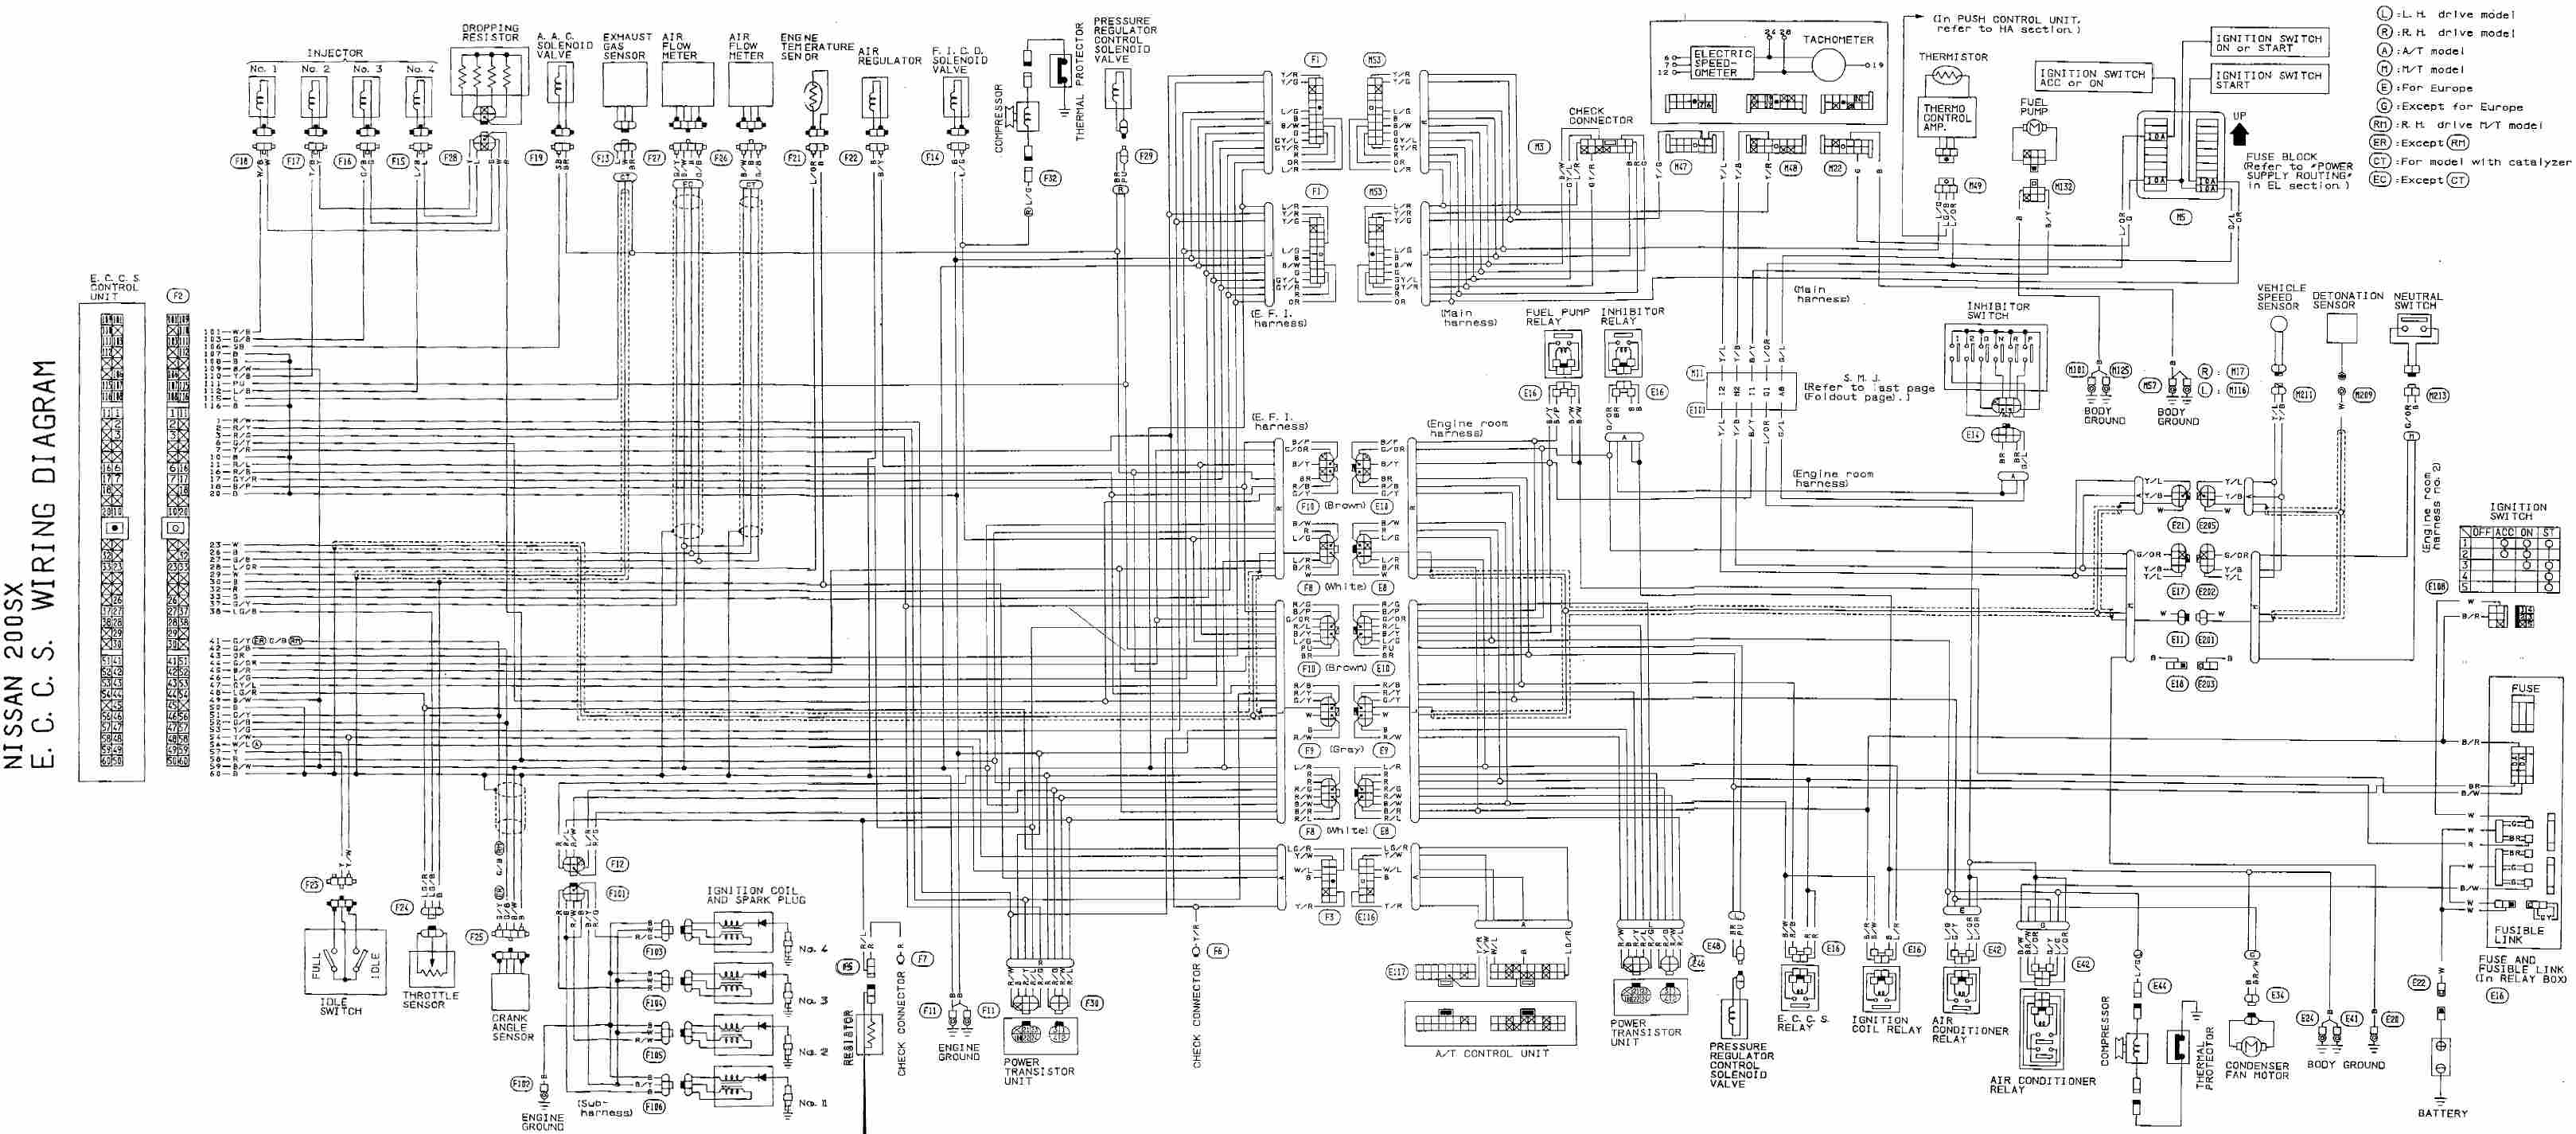 complete eccs wiring diagram of nissan 200x?t\=1508500919 300zx wiring diagram 300zx power diagram \u2022 wiring diagrams j  at webbmarketing.co